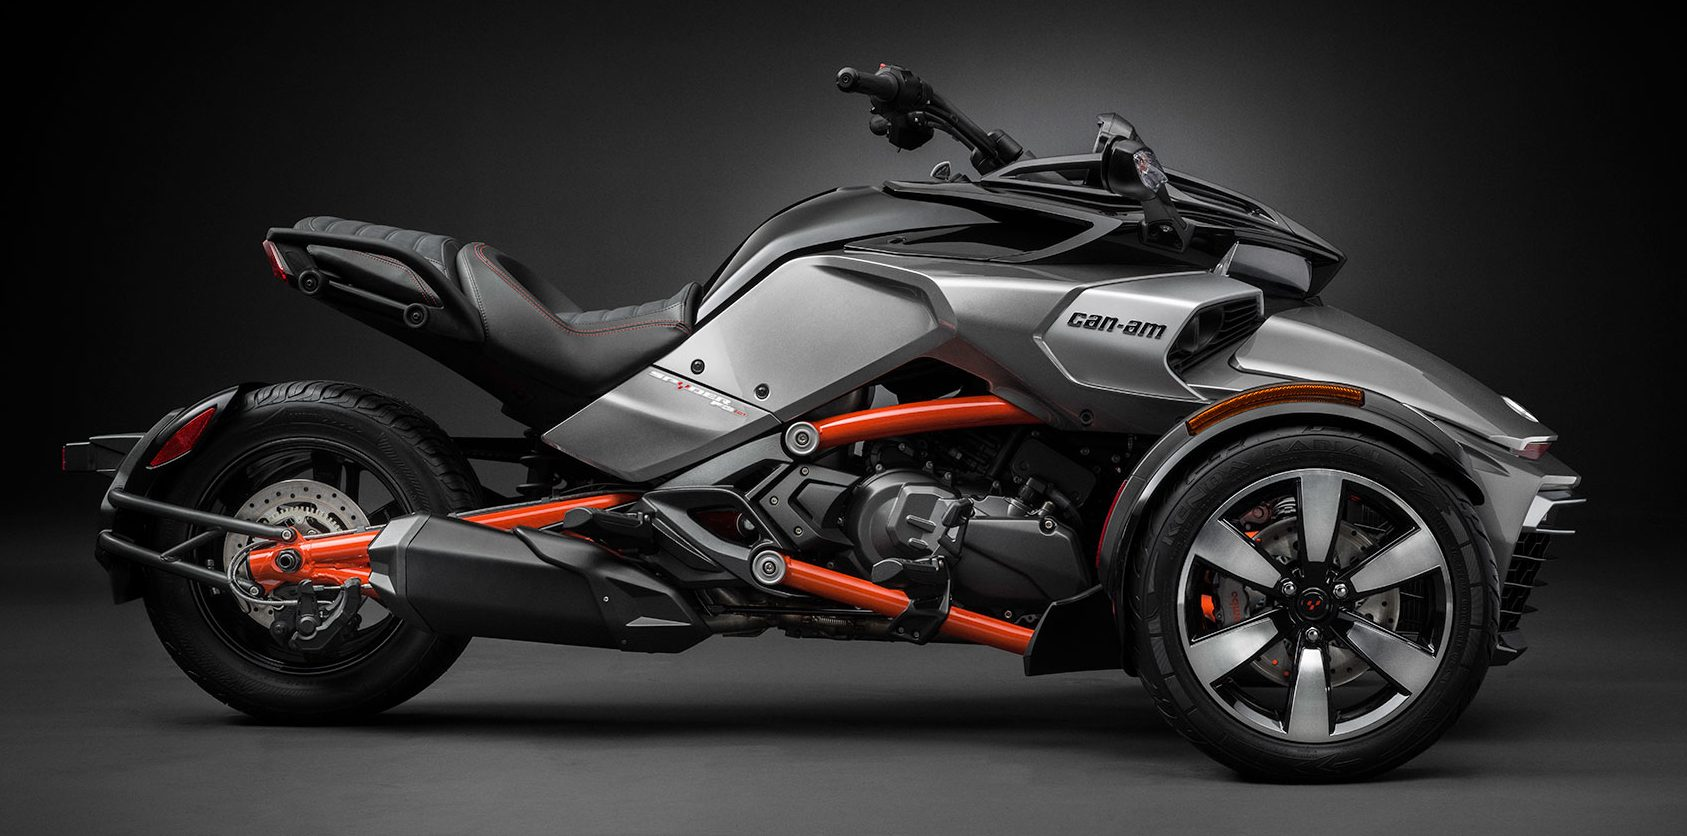 Brp Can Am Spyder >> 2016 Can-Am Spyder F3-S: from concept to reality | Webike Thailand